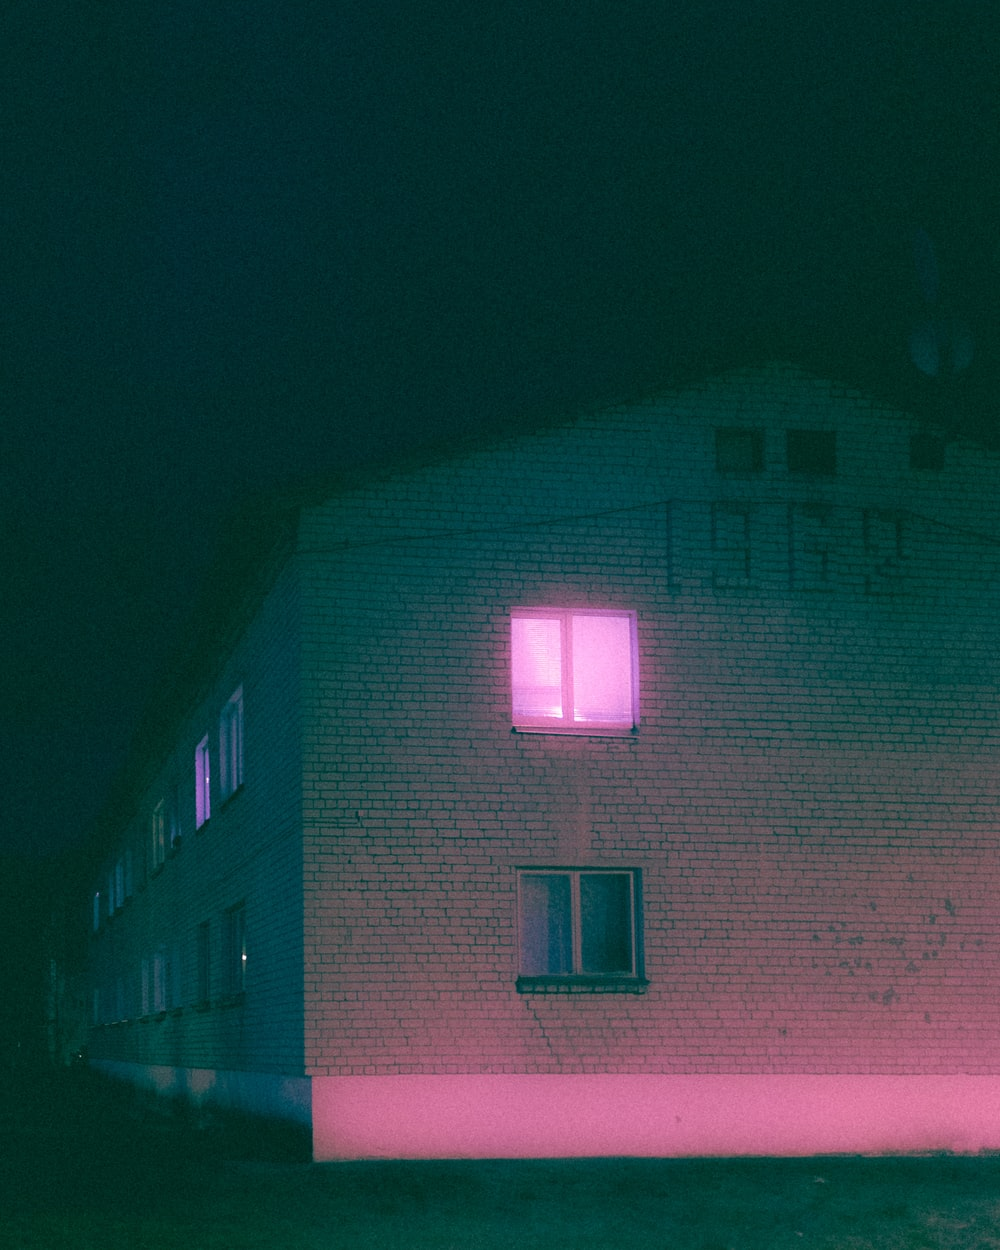 pink and white concrete building during nighttime